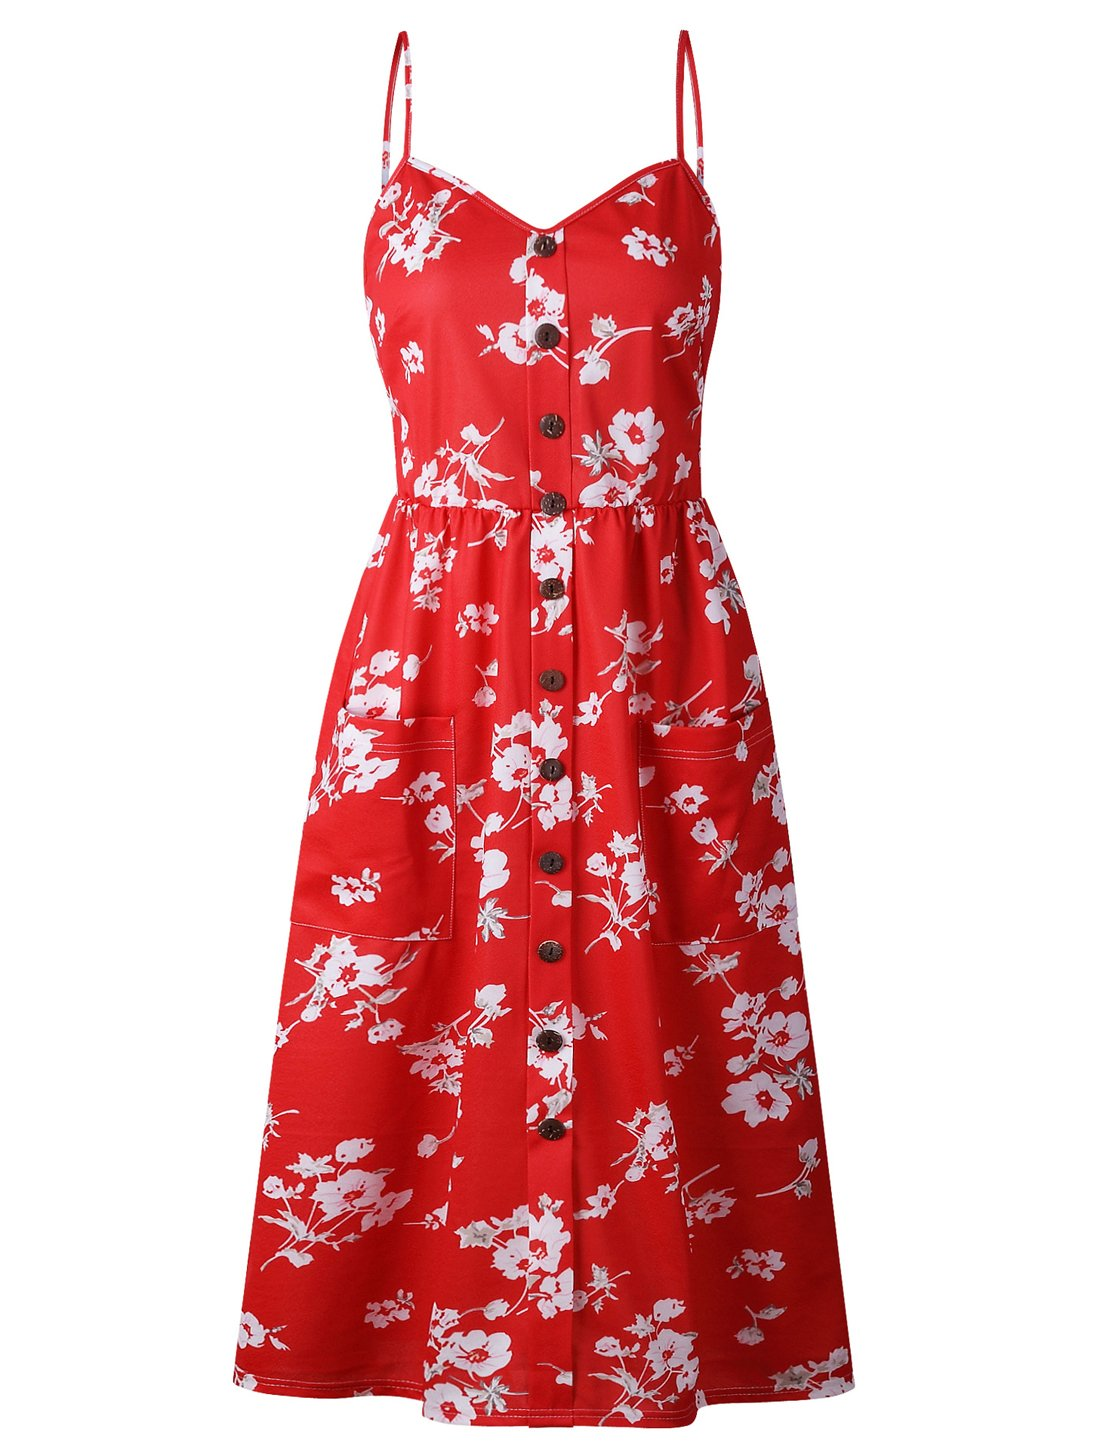 BABAKUD Women's Dresses Summer Red Floral Spaghetti Strap Button Down Midi Dress with Pocket, Size S